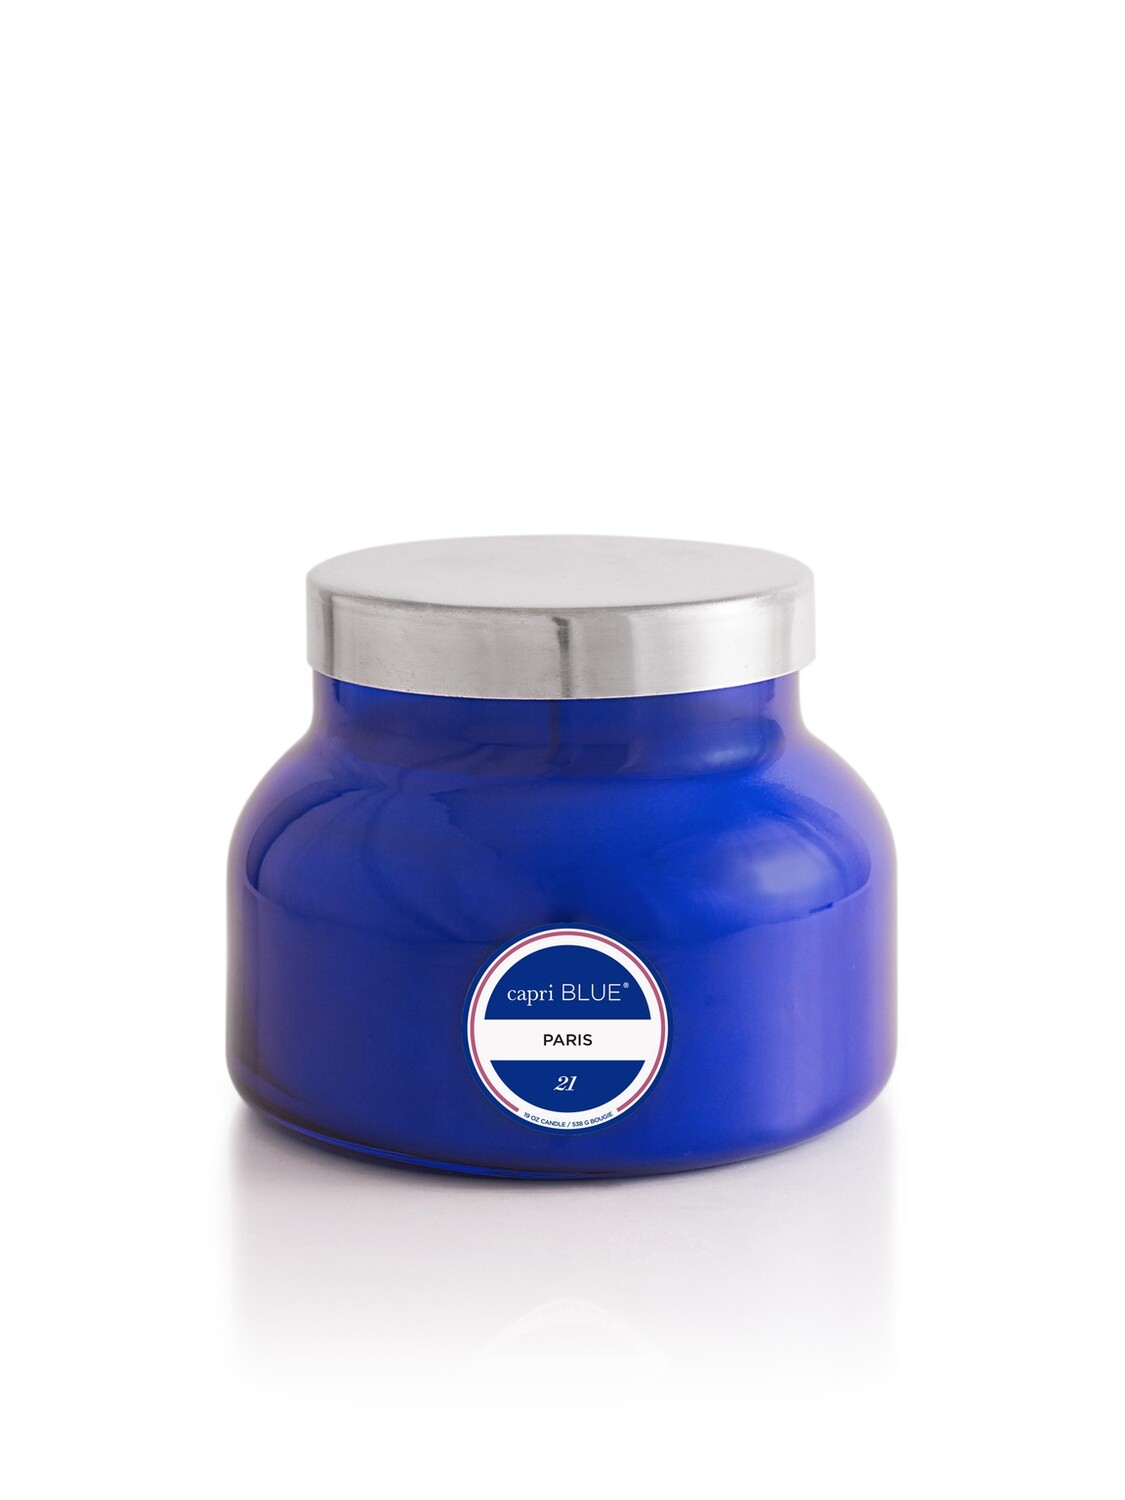 Paris Candle - Capri Blue Signature Jar 19oz